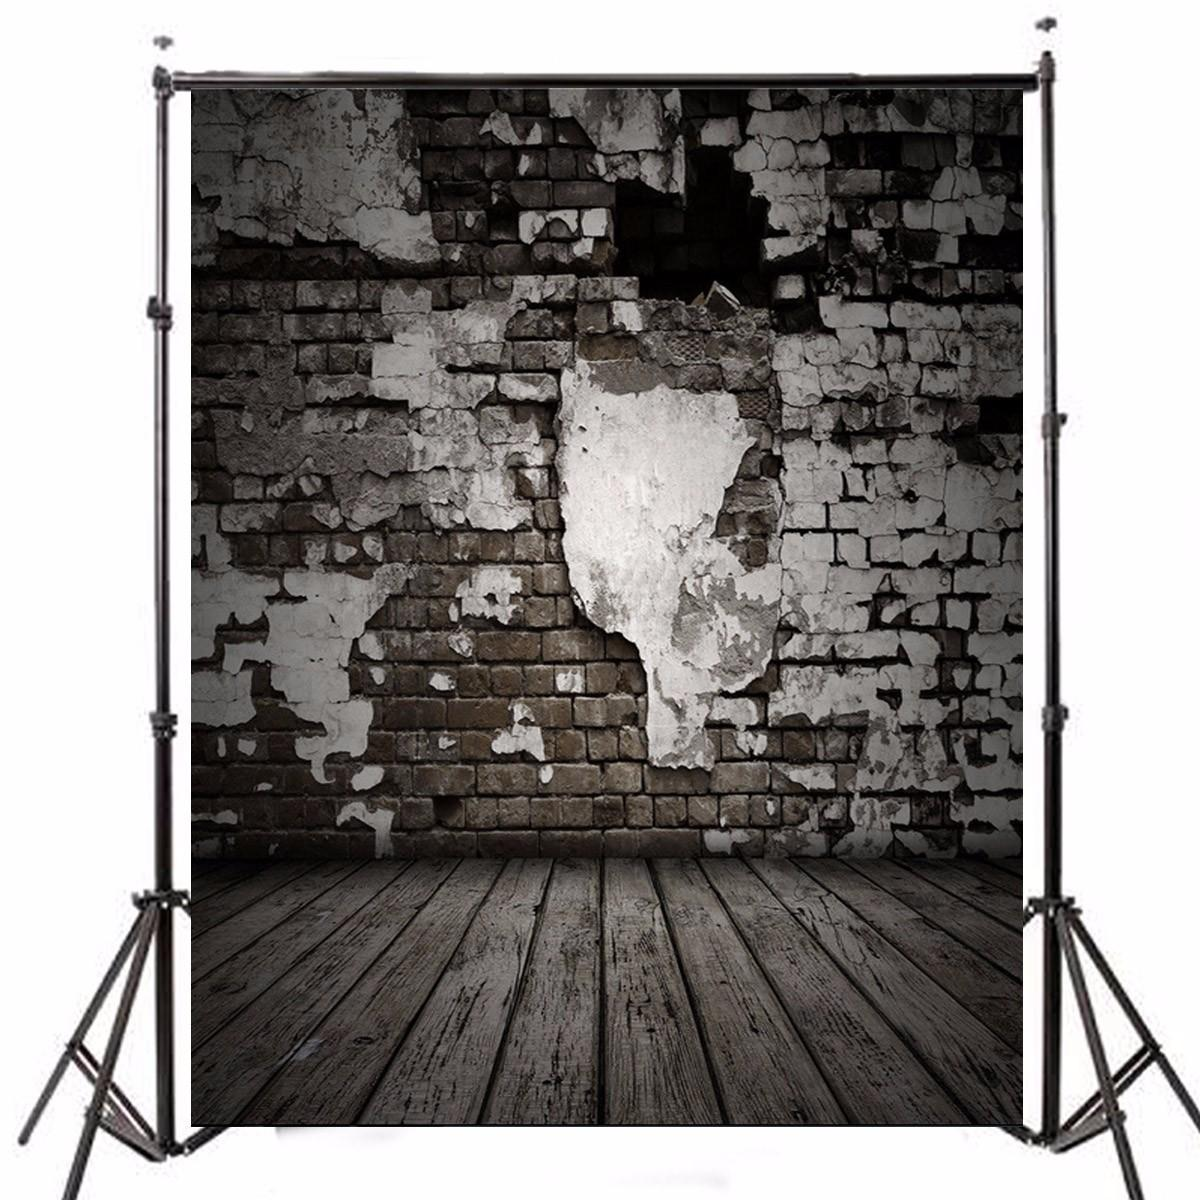 5x7FT Wooden Brick Theme Photography Background Vinyl Fabric Studio Backdrop 1.5x2.1m, Banggood  - buy with discount